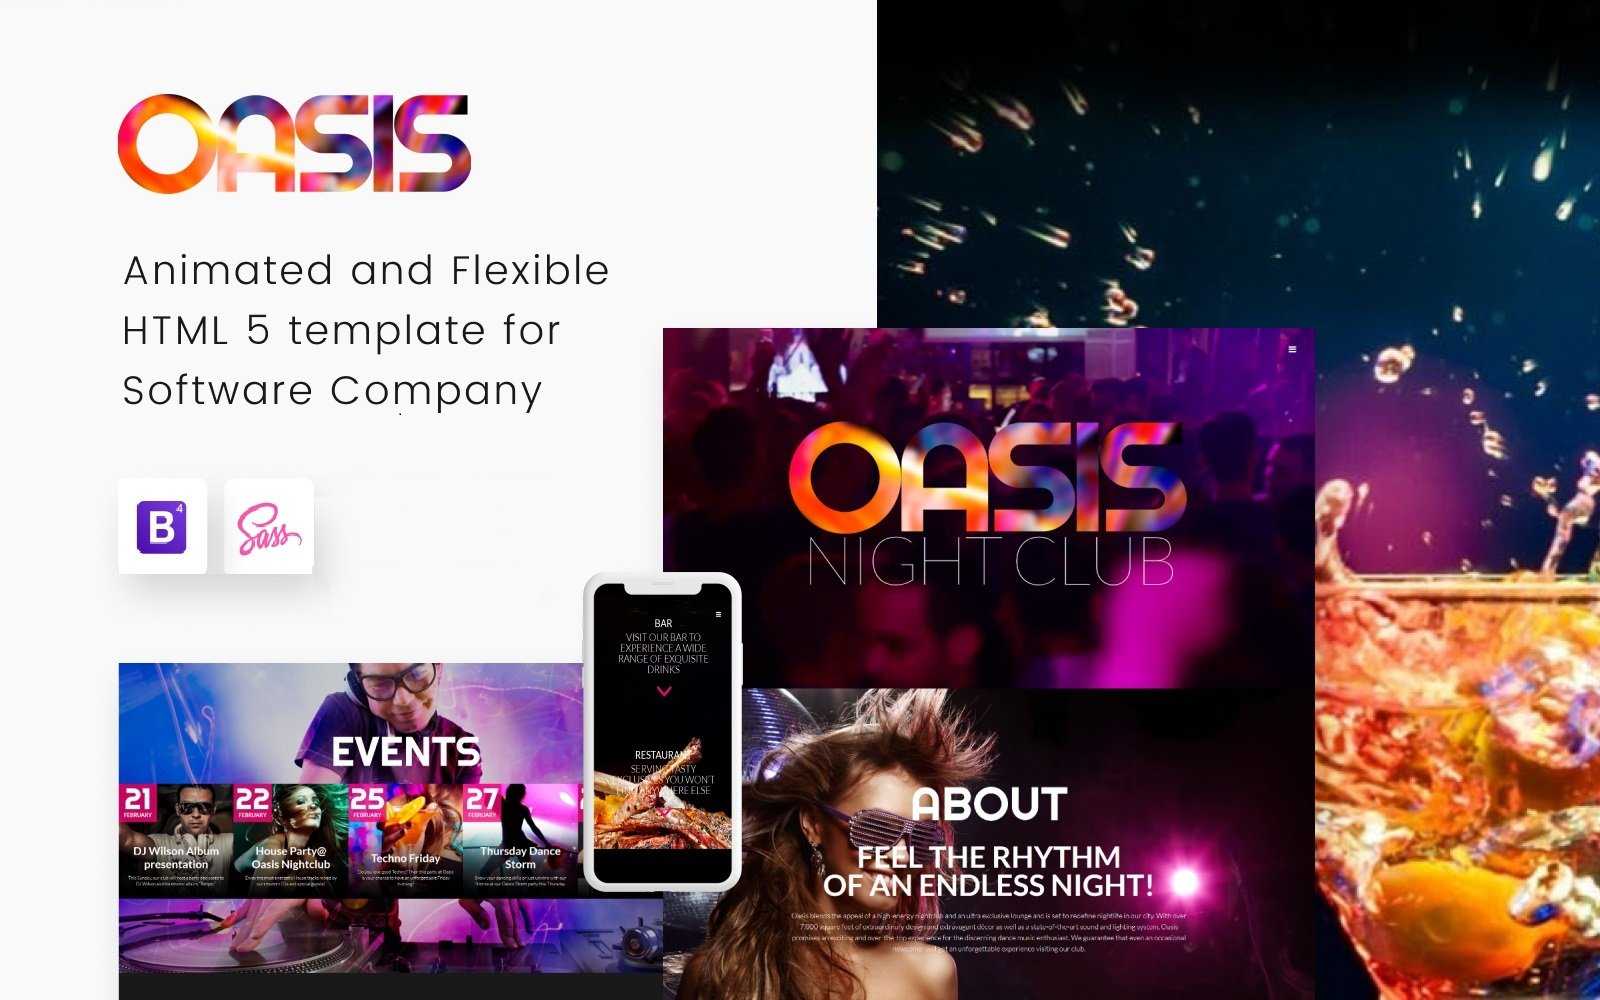 The Oasis Night Club Responsive Javascript Animated Design 53412, one of the best website templates of its kind (night club, most popular), also known as oasis night club website template, music website template, dances website template, dancers website template, entertainment website template, joy website template, energy website template, free drinks website template, tickets website template, party website template, deejays website template, dj website template, events website template, beats website template, disks website template, songs website template, tunes website template, rhythms website template, gallery website template, photos website template, pictures website template, guests website template, participants website template, interview website template, stars website template, artists website template, funs website template, booking website template, mob website template, glamour girls website template, party website template, MC cocktail and related with oasis night club, music, dances, dancers, entertainment, joy, energy, free drinks, tickets, party, deejays, dj, events, beats, disks, songs, tunes, rhythms, gallery, photos, pictures, guests, participants, interview, stars, artists, funs, booking, mob, glamour girls, party, MC cocktail, etc.